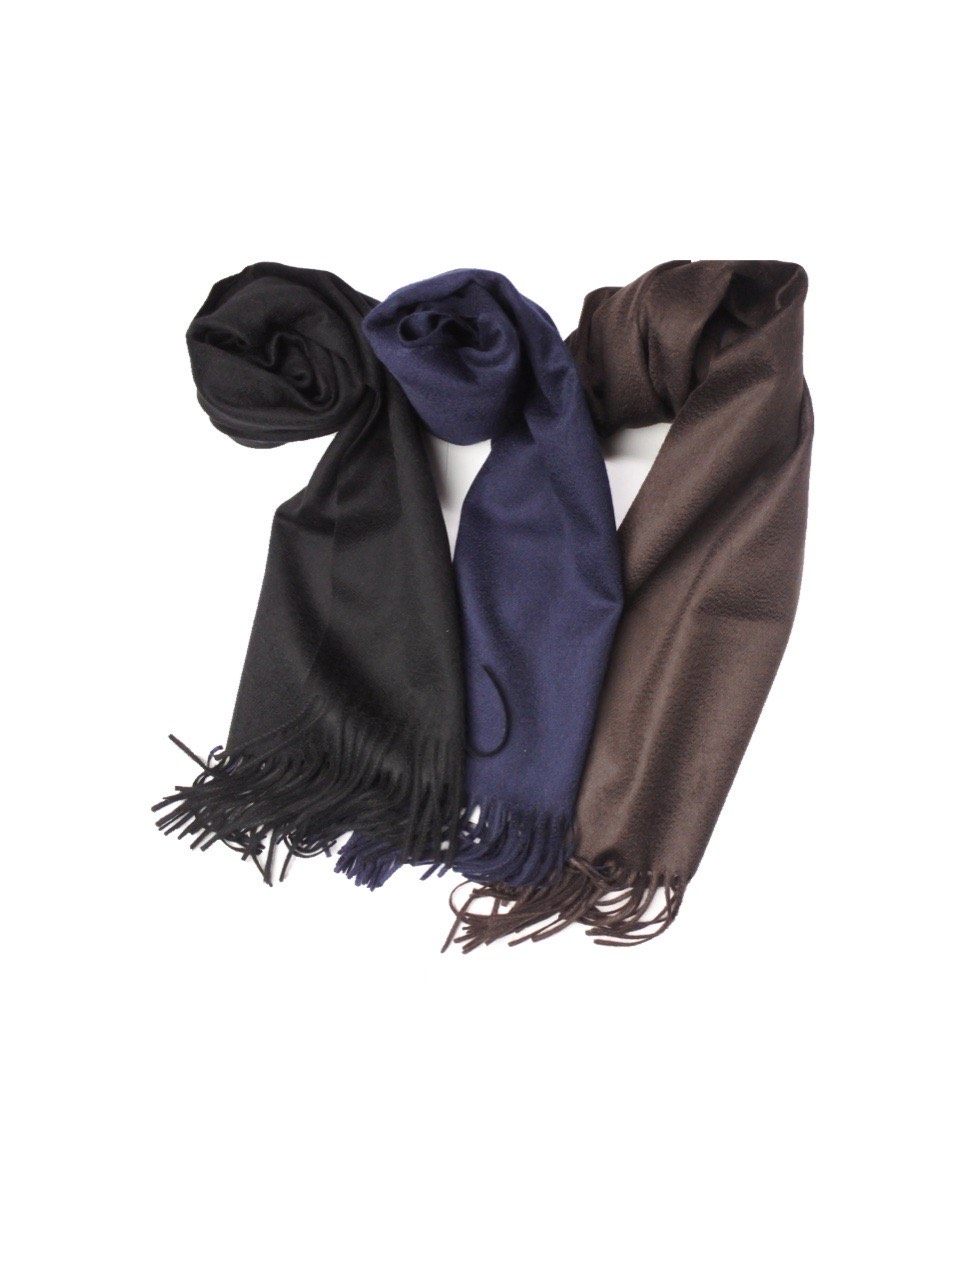 ≪New Arrival≫PIACENZA/100% CASHIMIERE SCARF [48-212-0003]